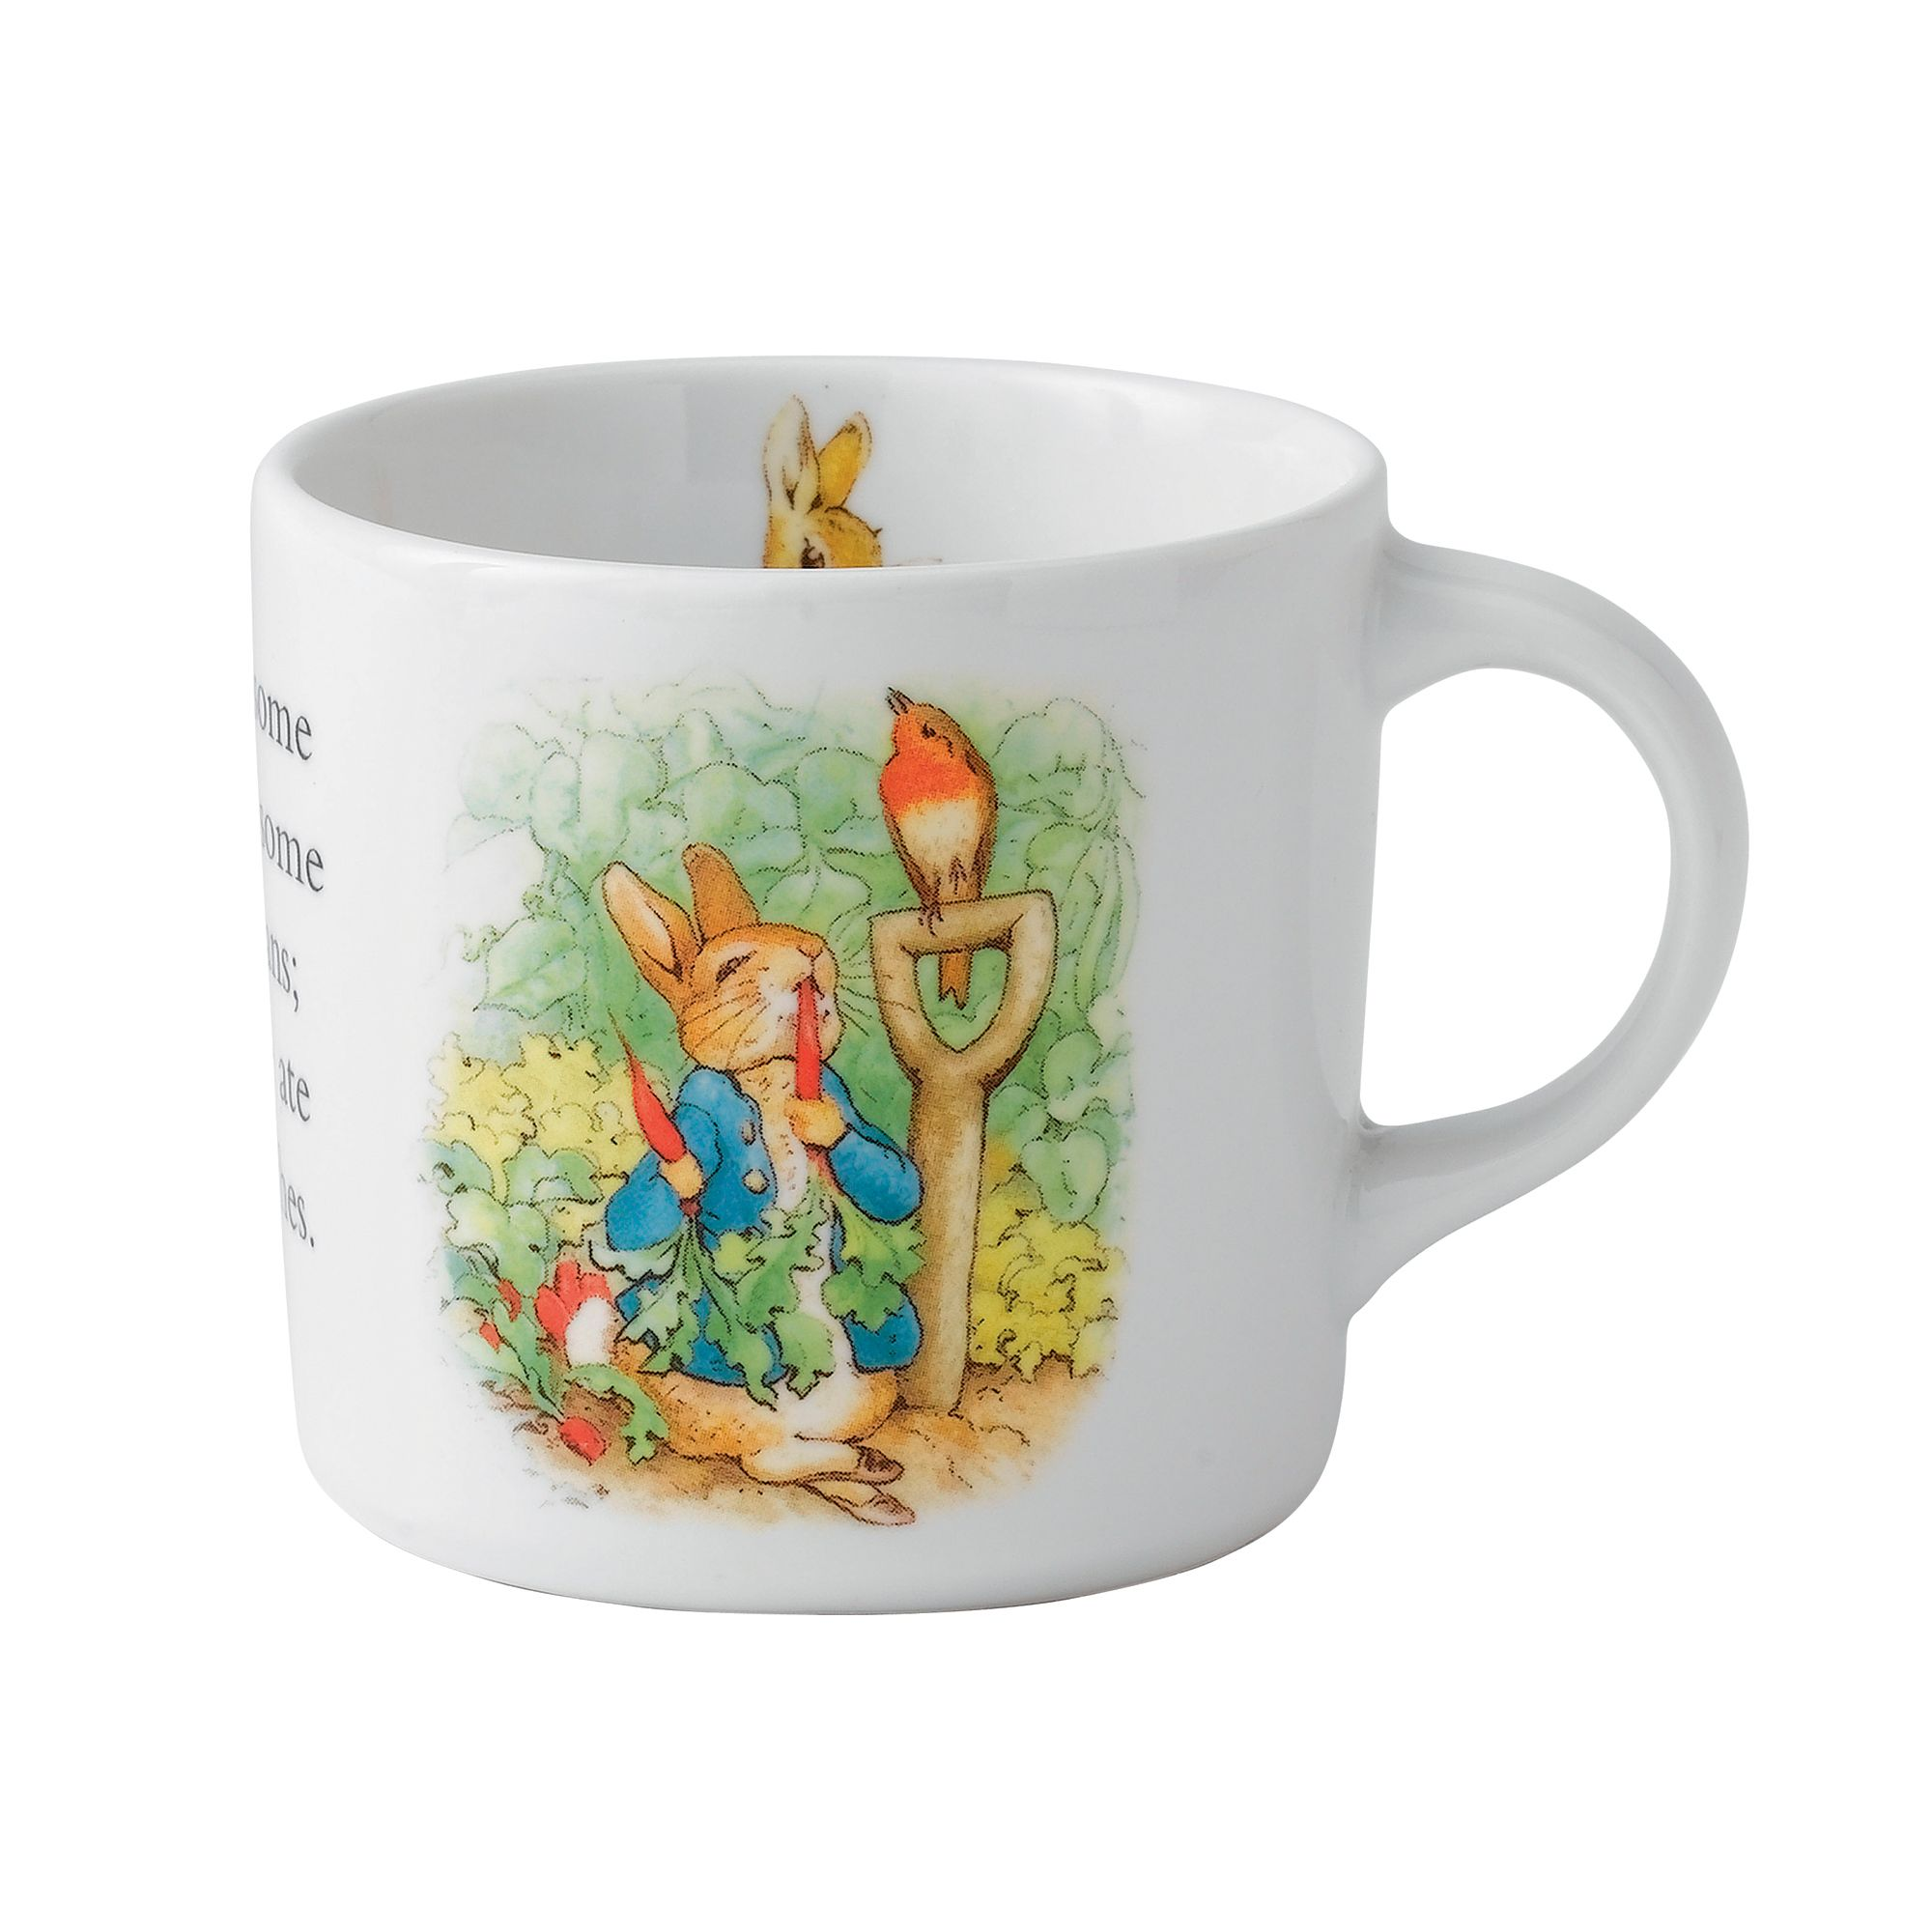 Peter Rabbit Original Mug 0.15 Ltr.